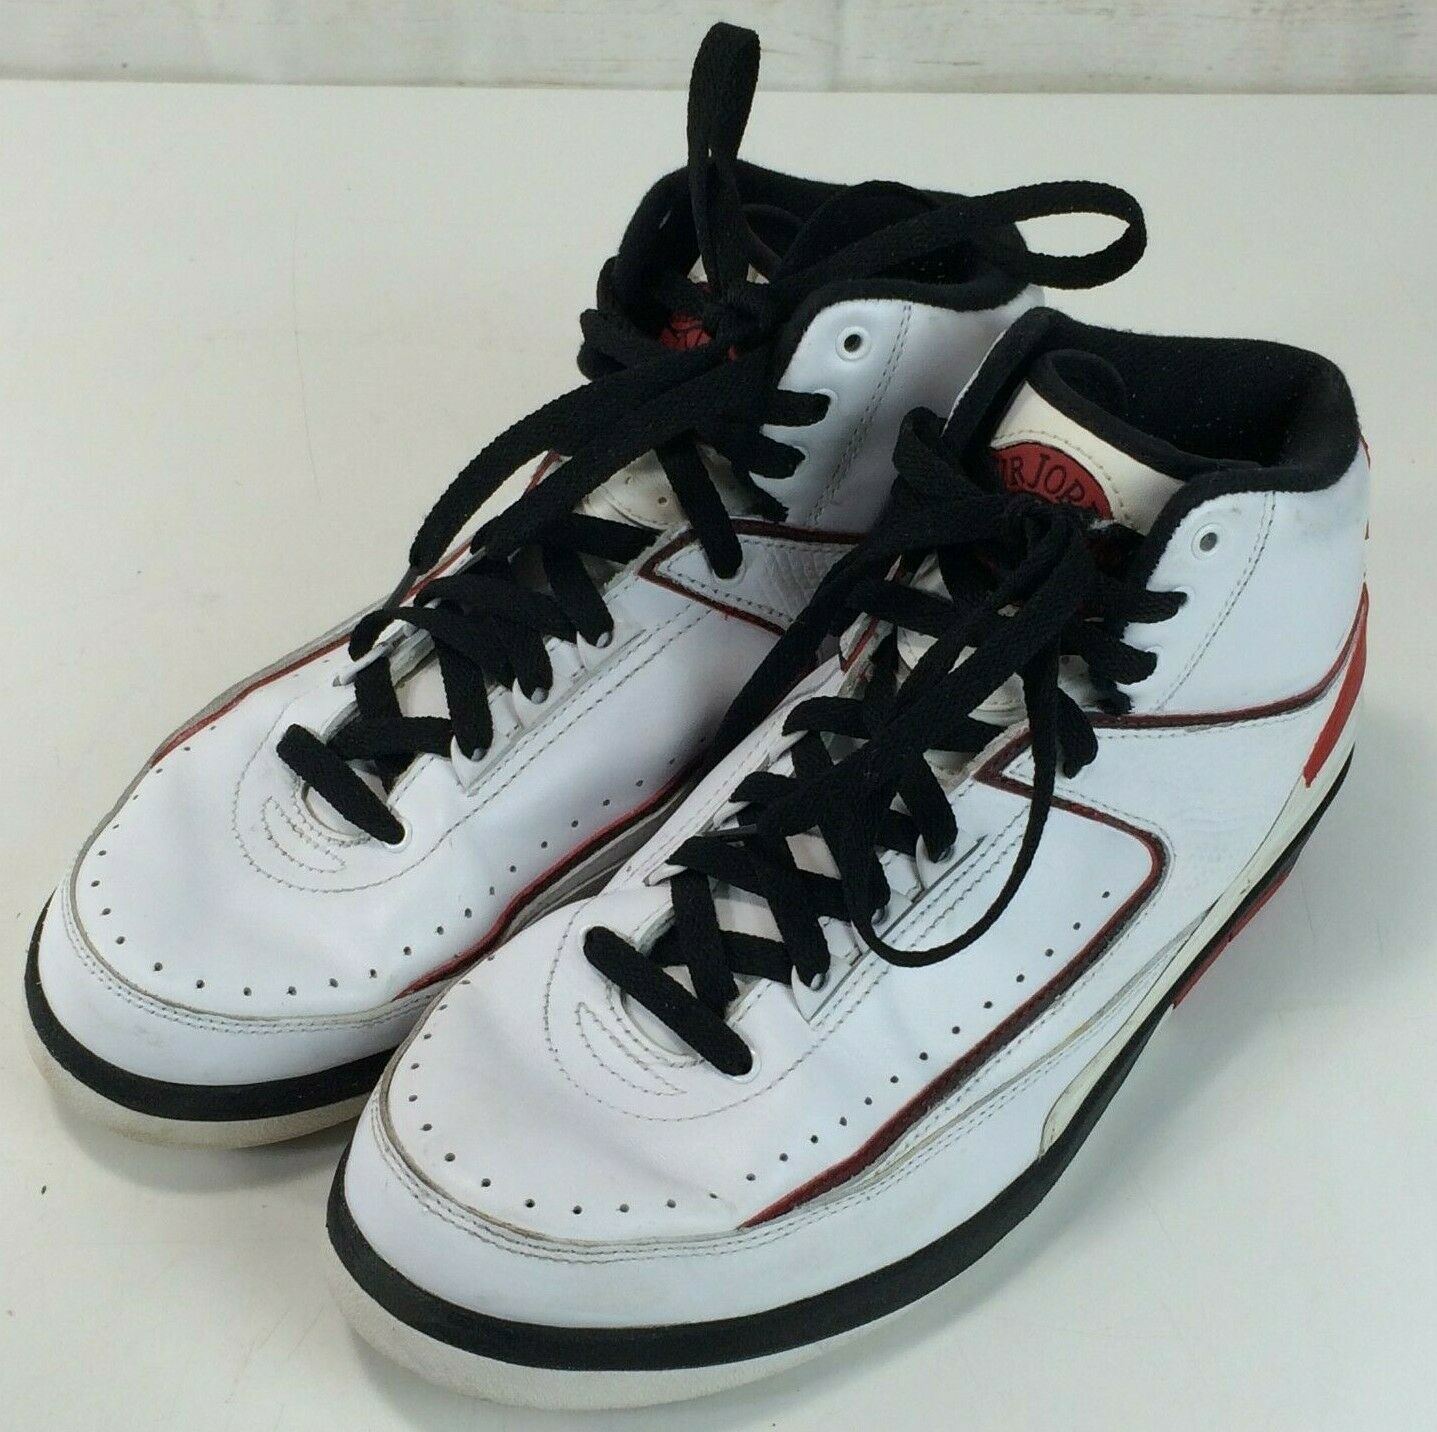 huge discount 349ce cac0b Nike Air Jordan 2 II Retro QF Chicago 2009 Men s Size 8.5 395709-101 -   98.99